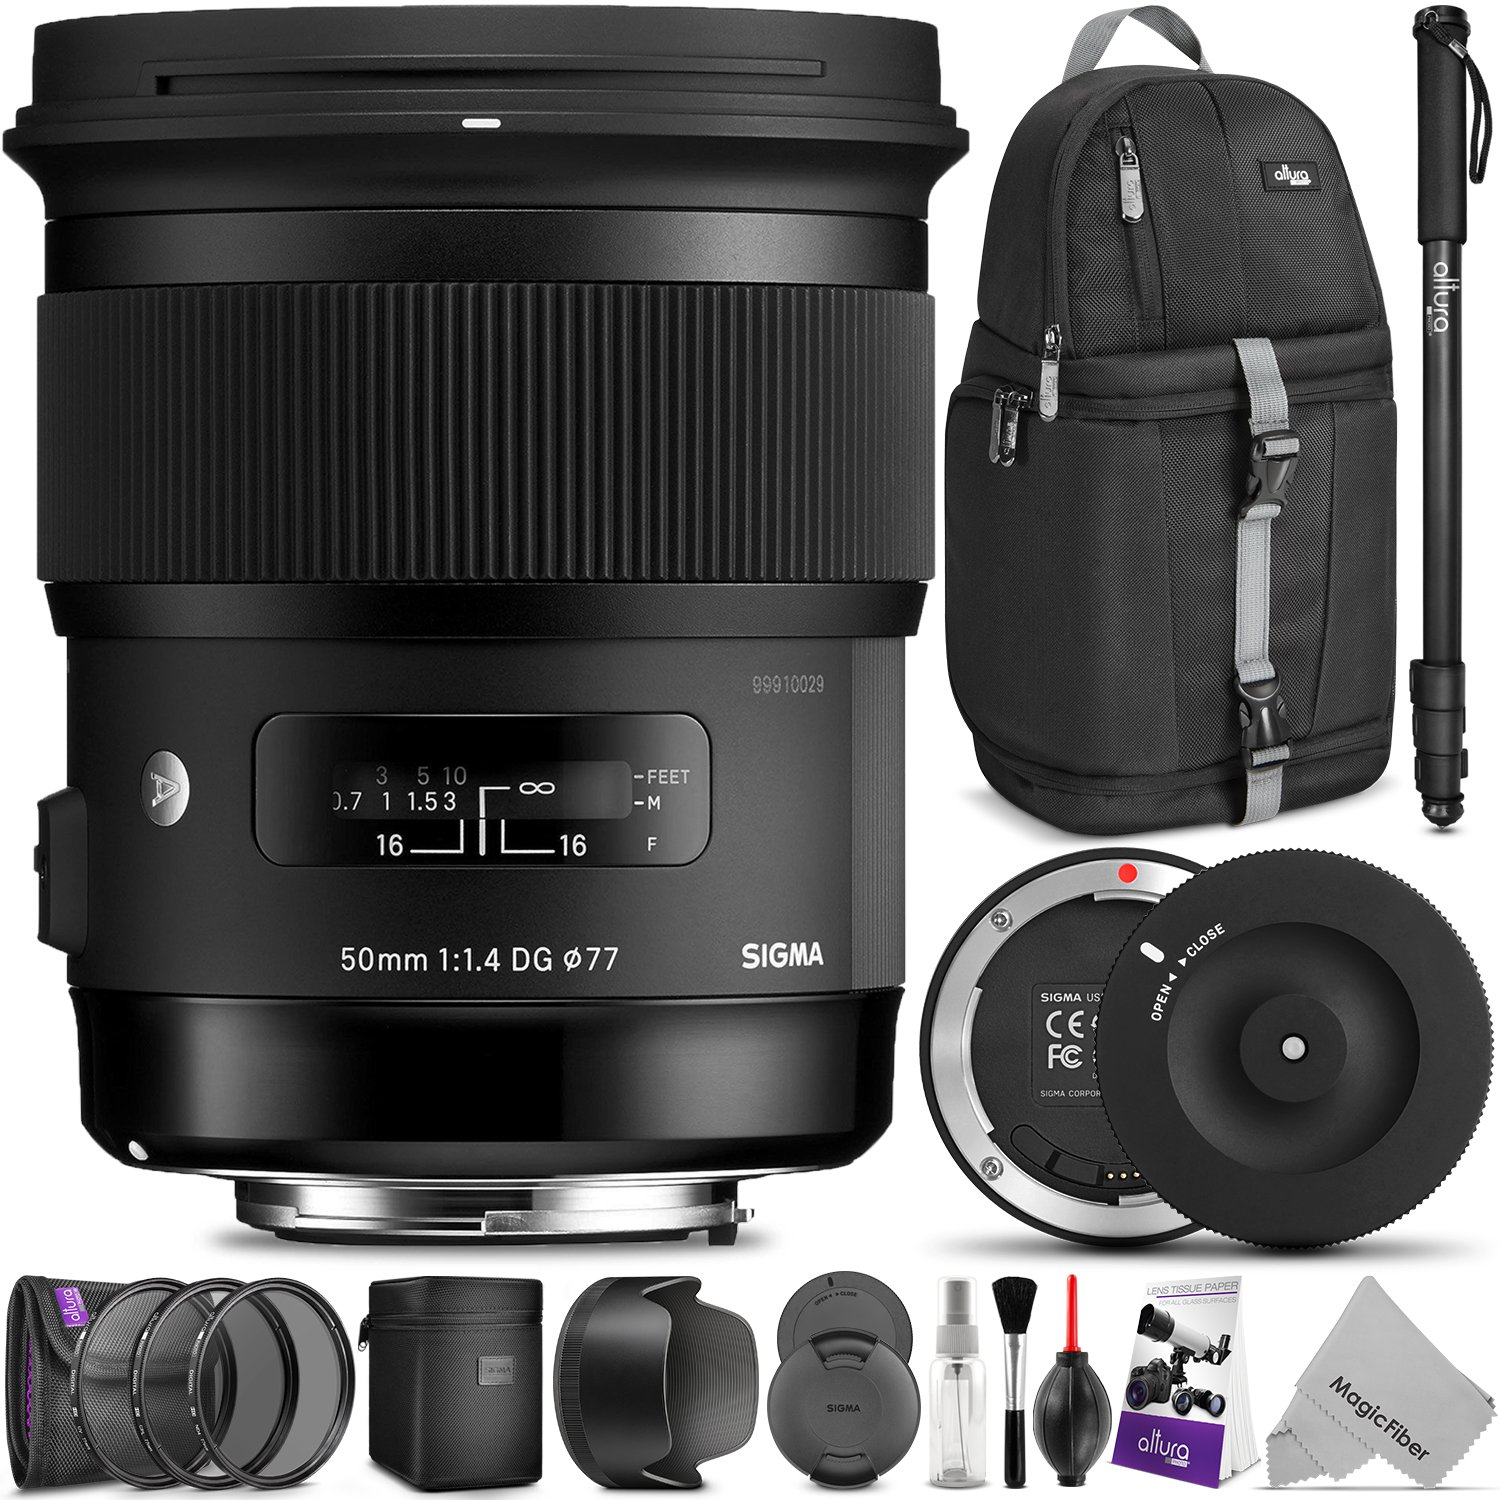 Sigma 50mm F1.4 ART DG HSM Lens for CANON DSLR Cameras w/ Sigma USB Dock & Advanced Photo and Travel Bundle by Sigma